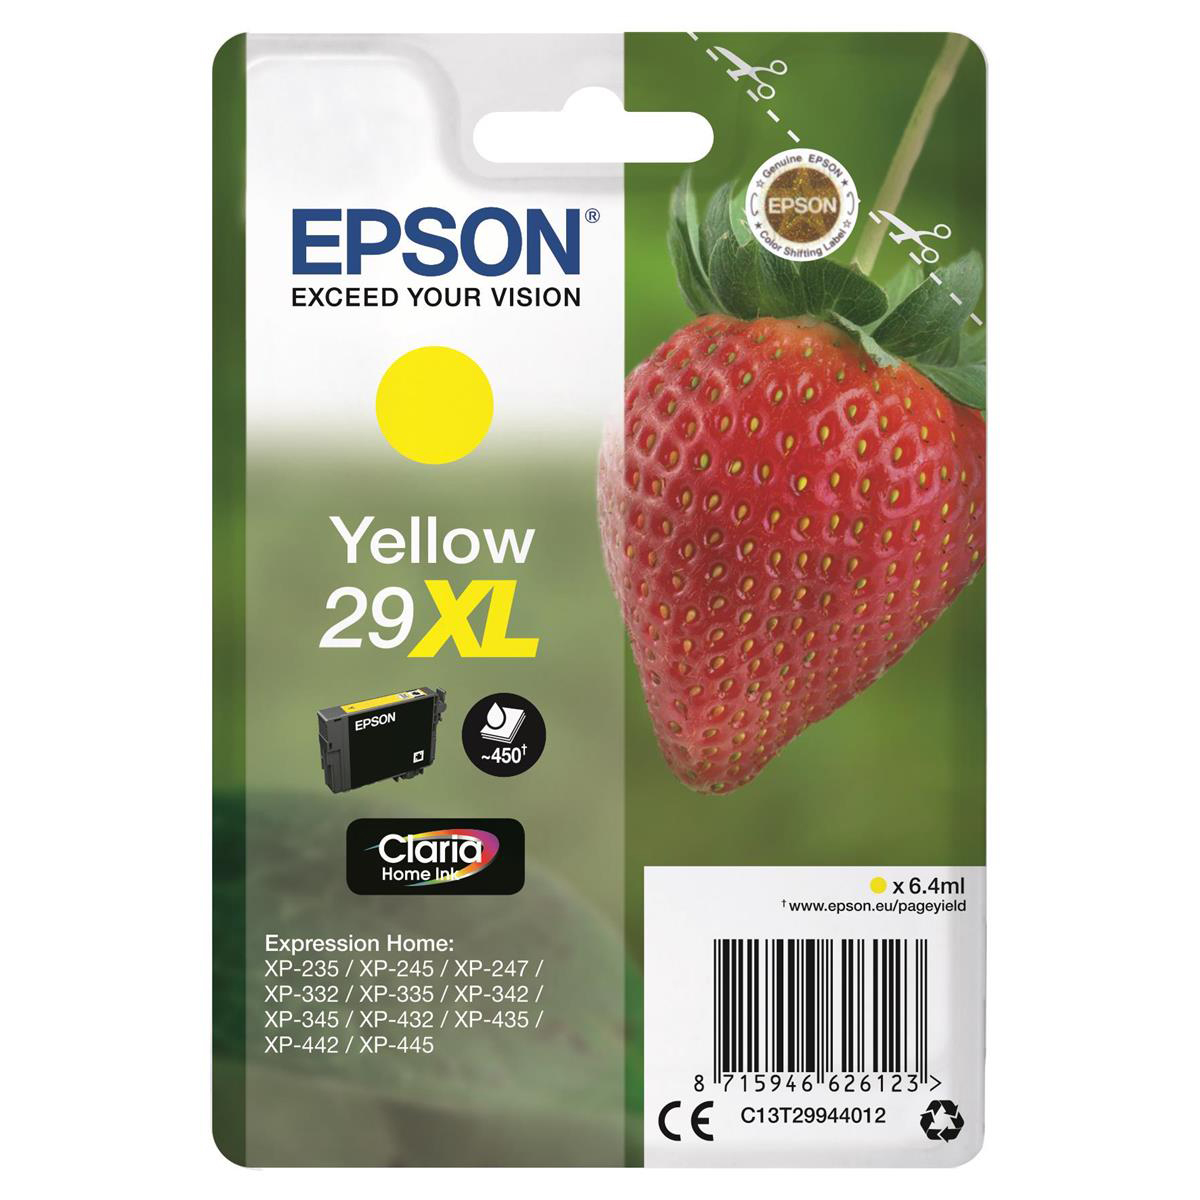 Epson 29XL InkJet Cartridge Strawberry High Yield Page Life 450pp 6.4ml Yellow Ref C13T29944012